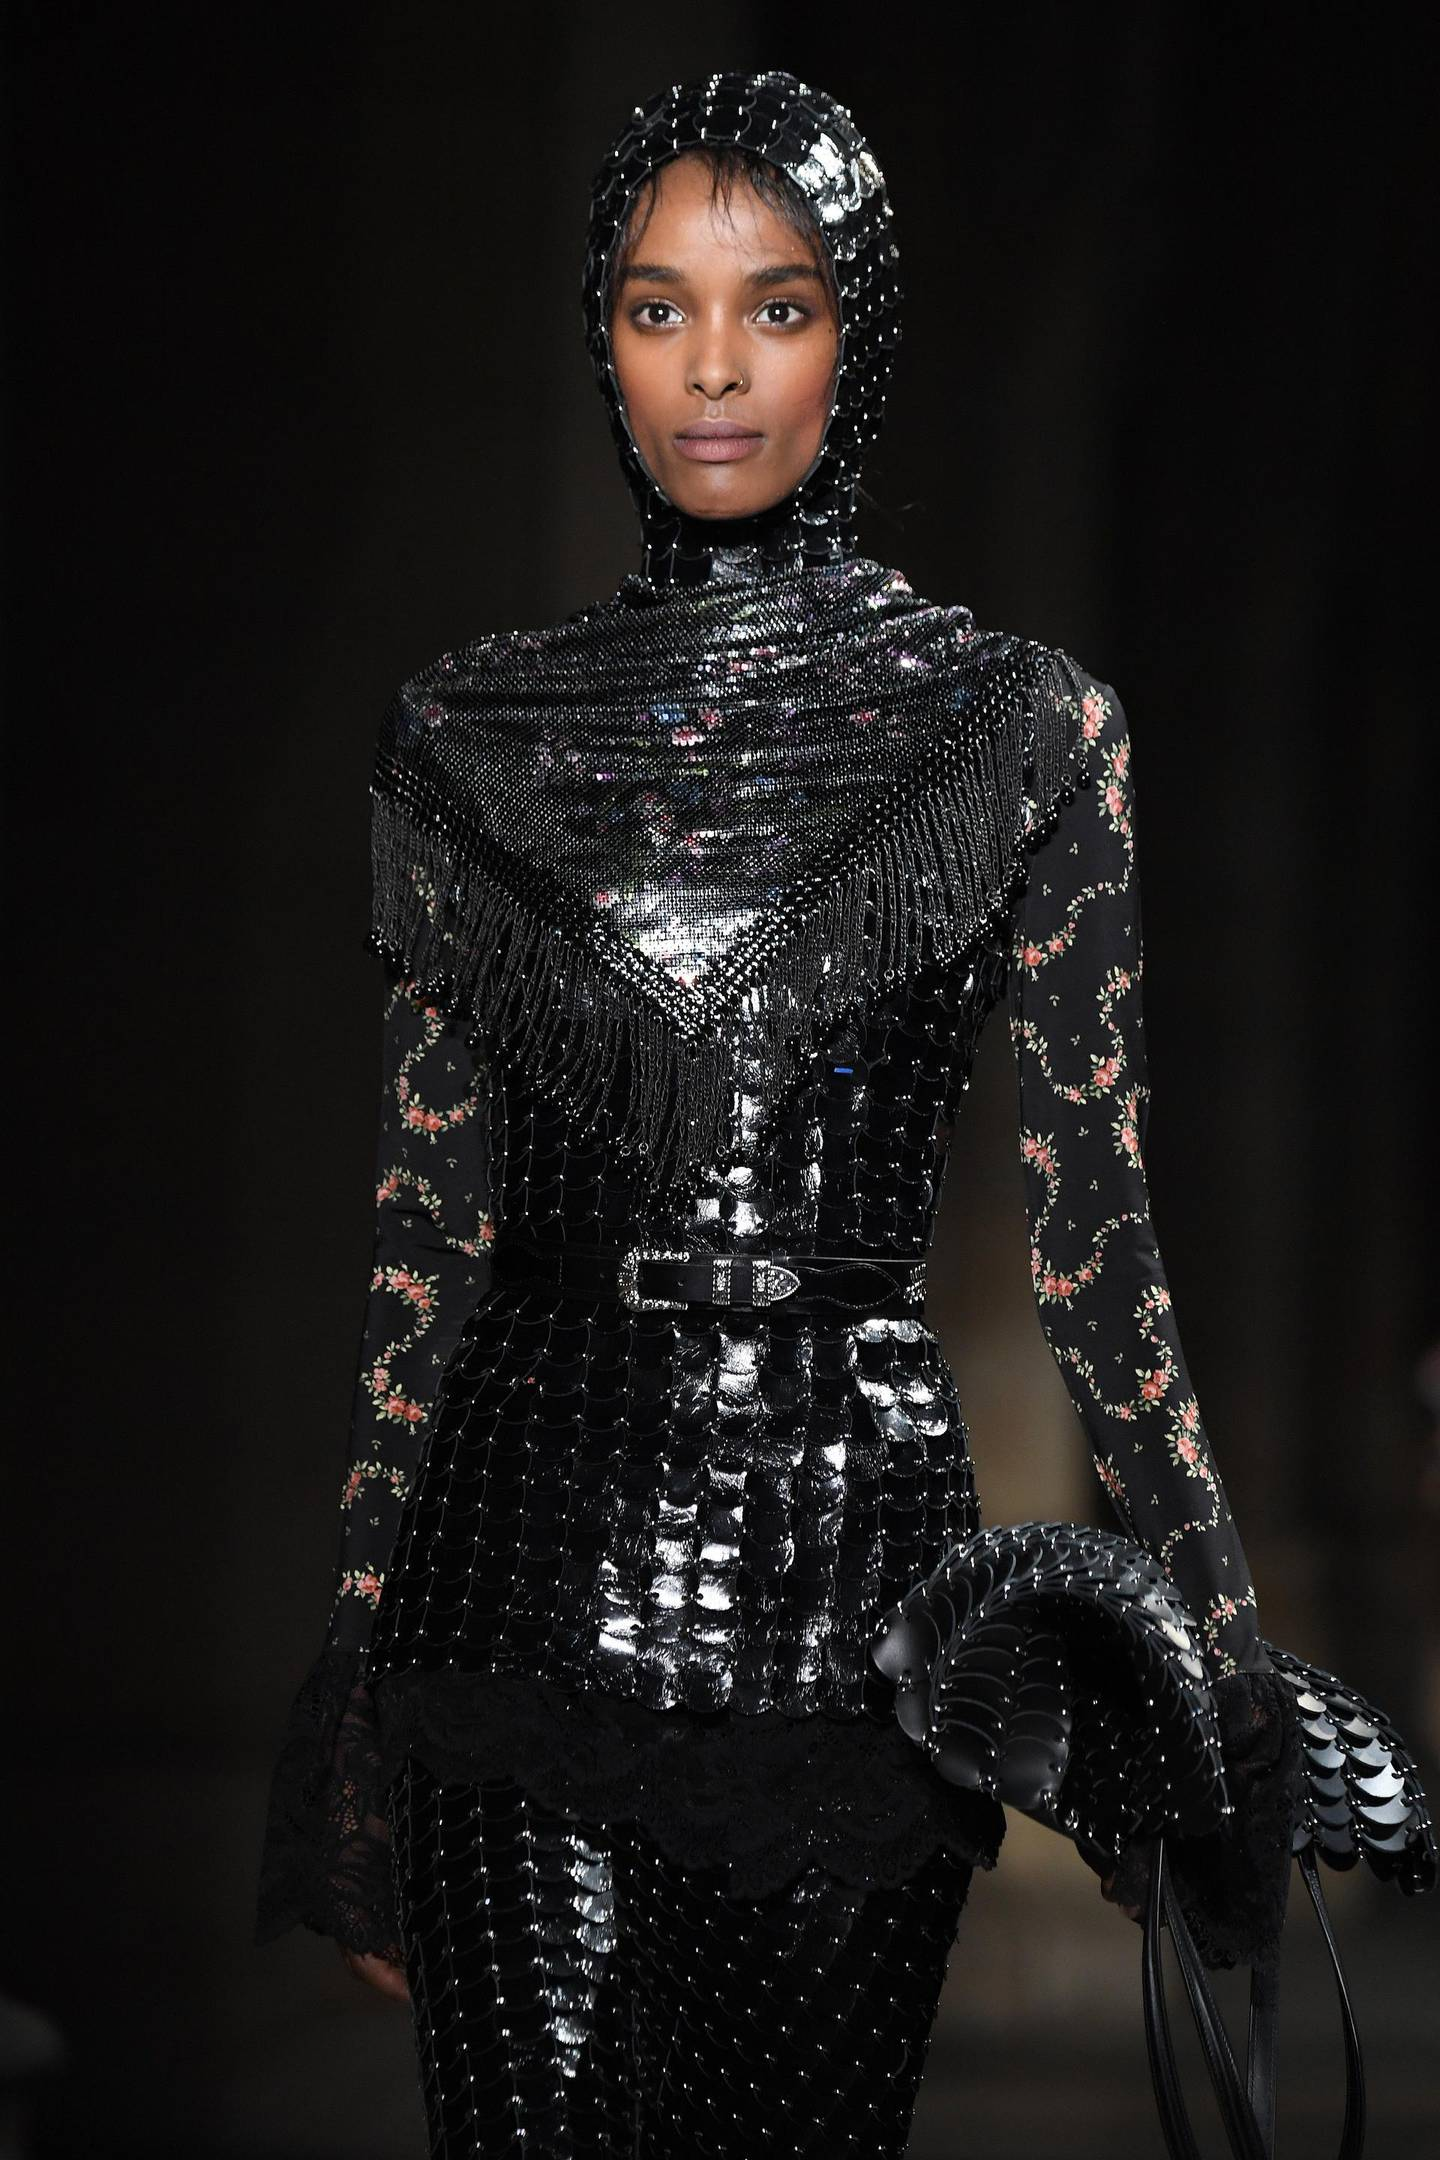 PARIS, FRANCE - FEBRUARY 27: A model walks the runway during the Paco Rabanne show at La Conciergerie as part of the Paris Fashion Week Womenswear Fall/Winter 2020/2021 on February 27, 2020 in Paris, France. (Photo by Pascal Le Segretain/Getty Images For Paco Rabanne)